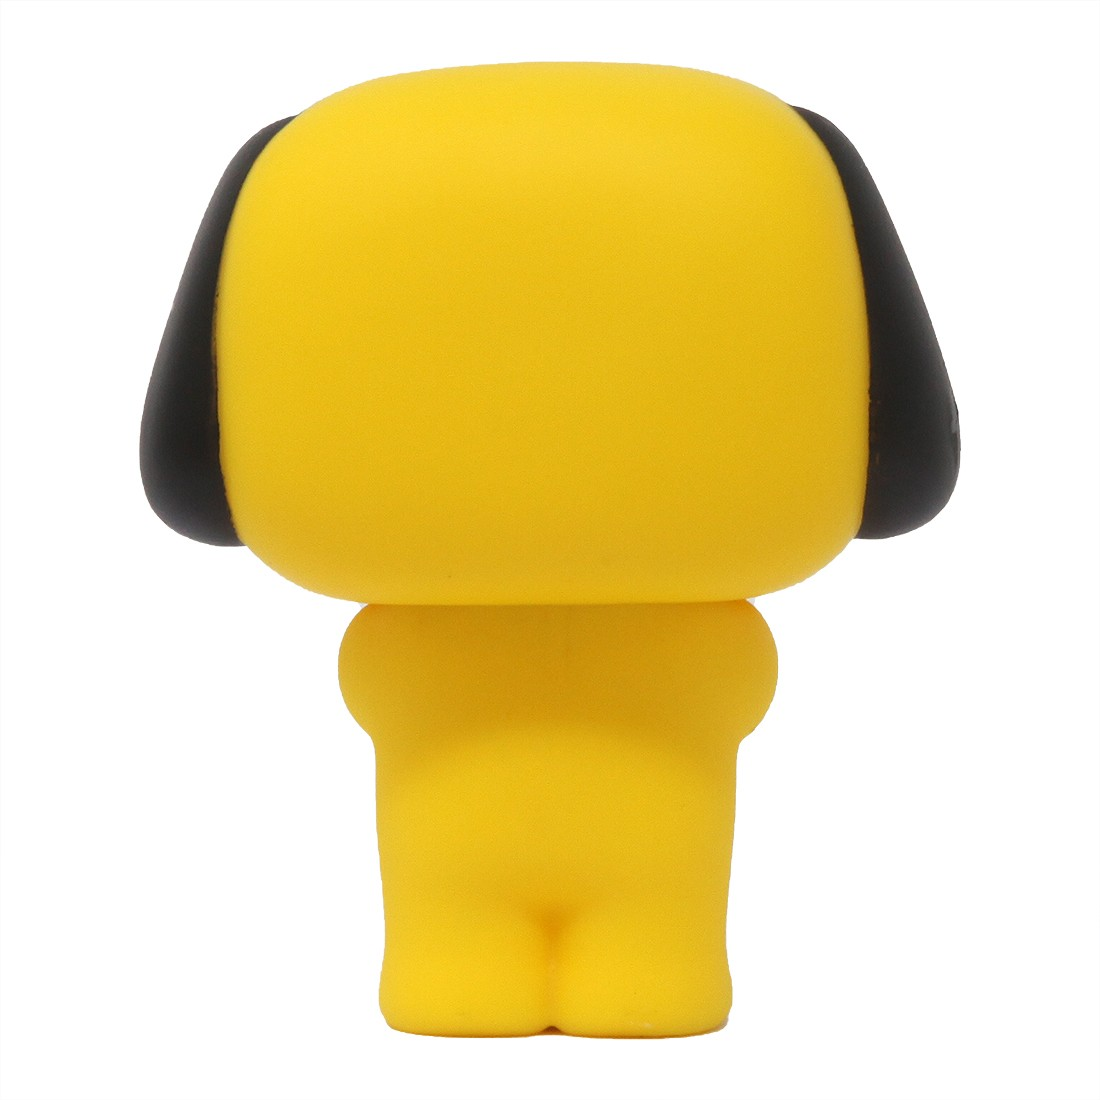 Funko Pop Animations Bt21 Chimmy Yellow High quality chimmy gifts and merchandise. bait